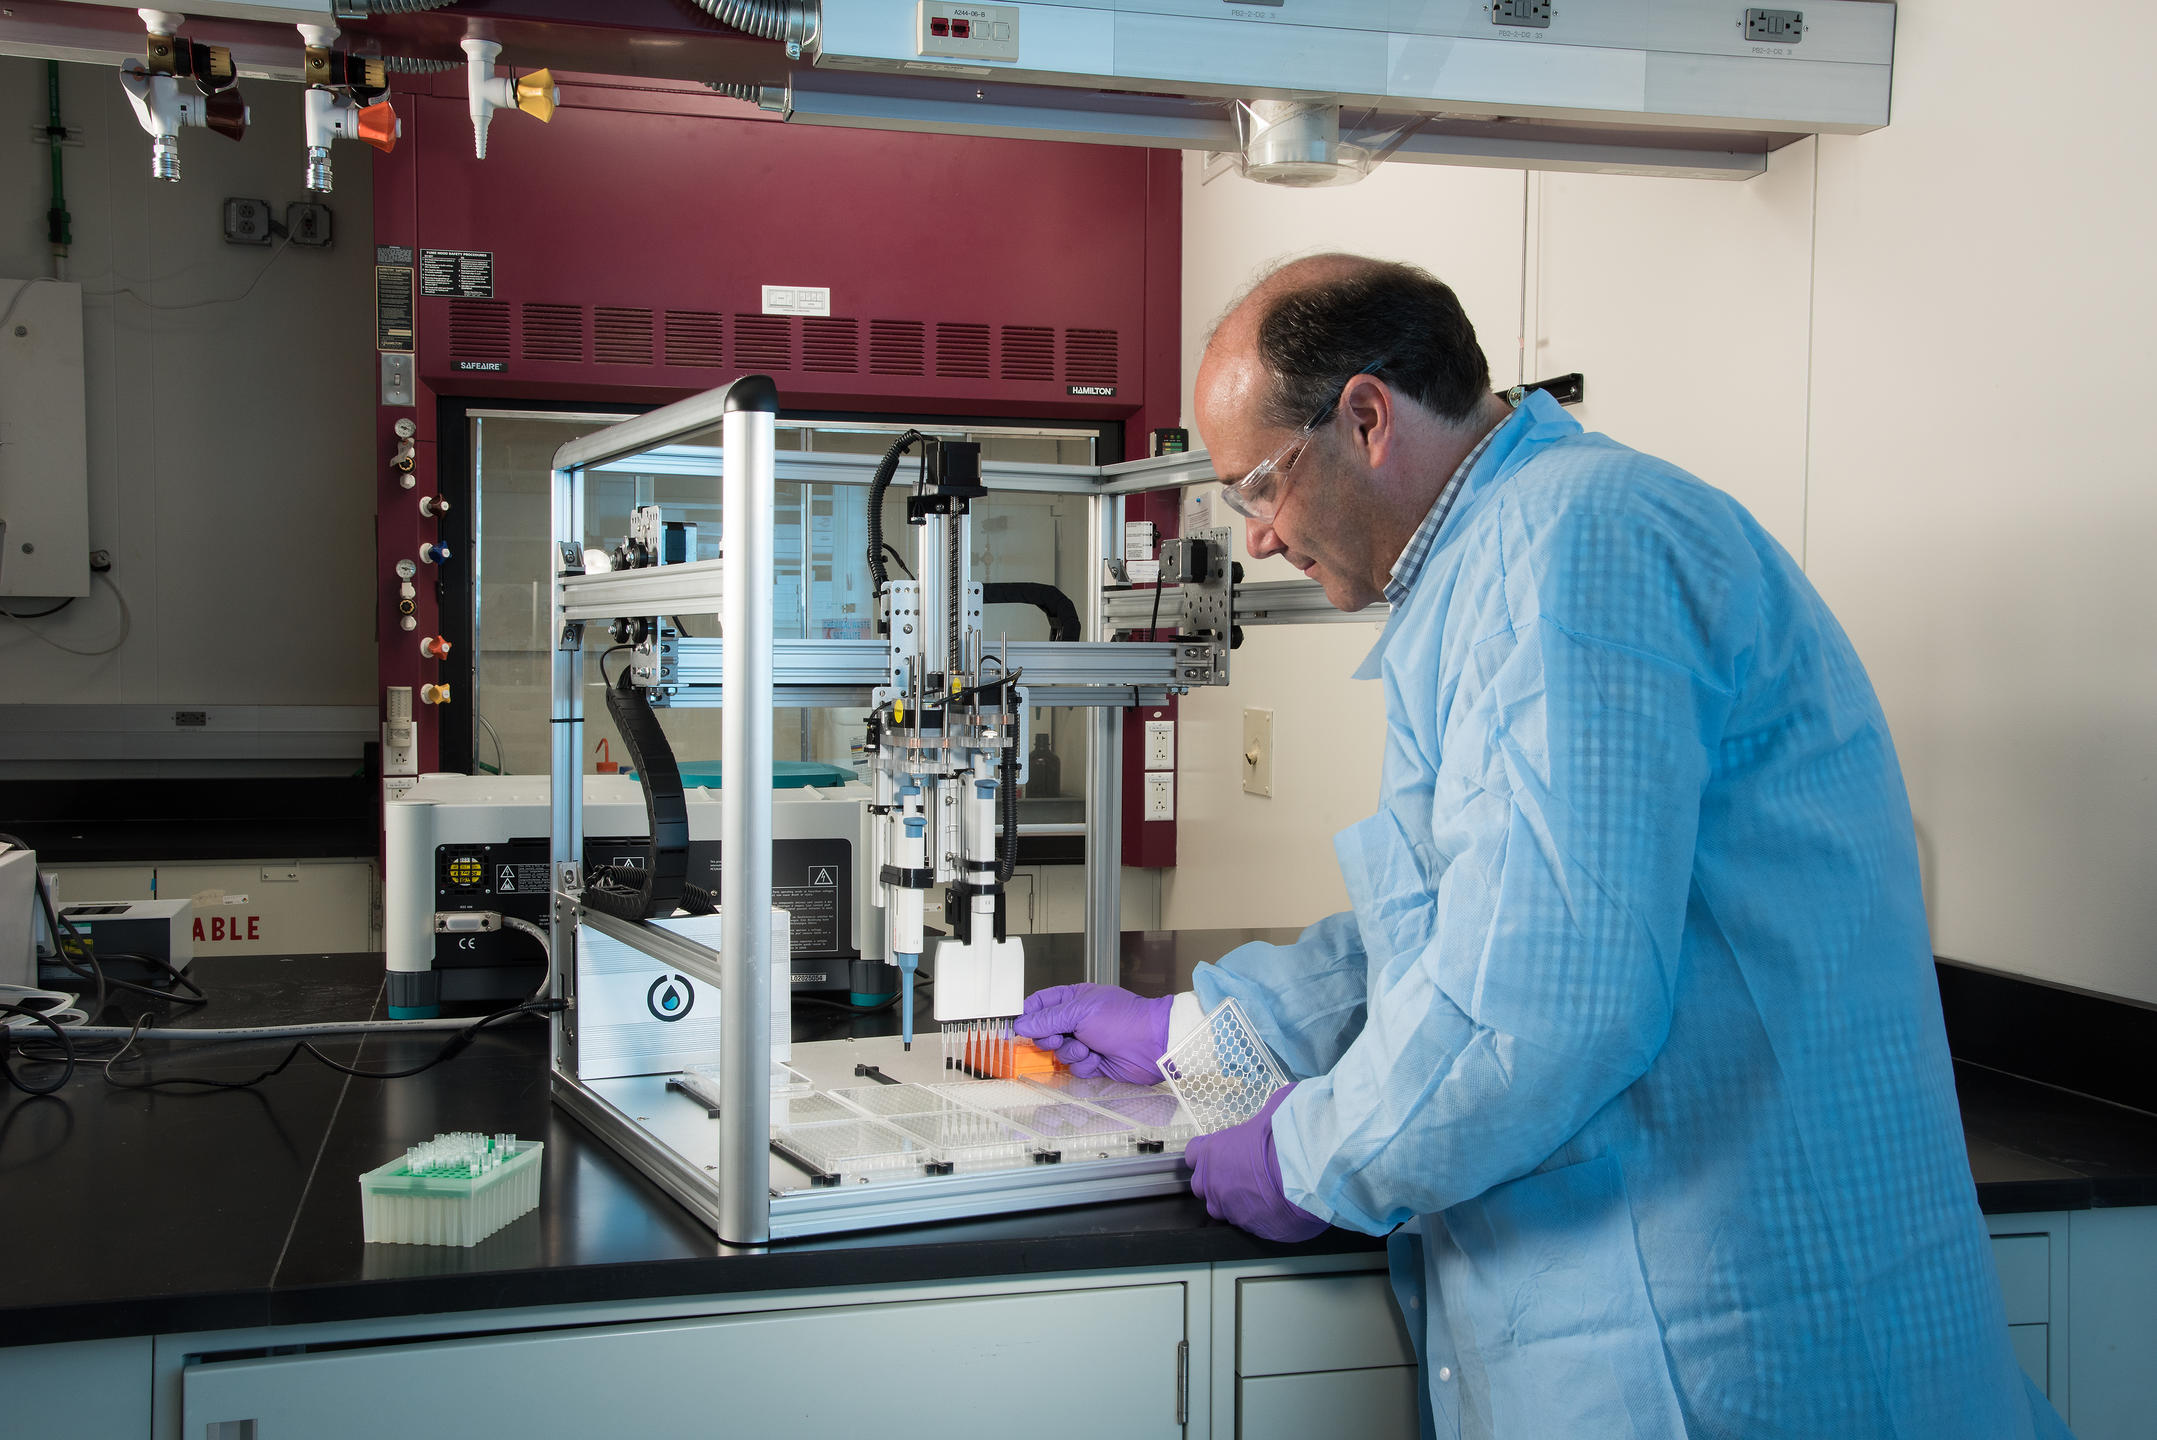 Researcher John Elliott in the lab loading samples into automated liquid handling instrument.